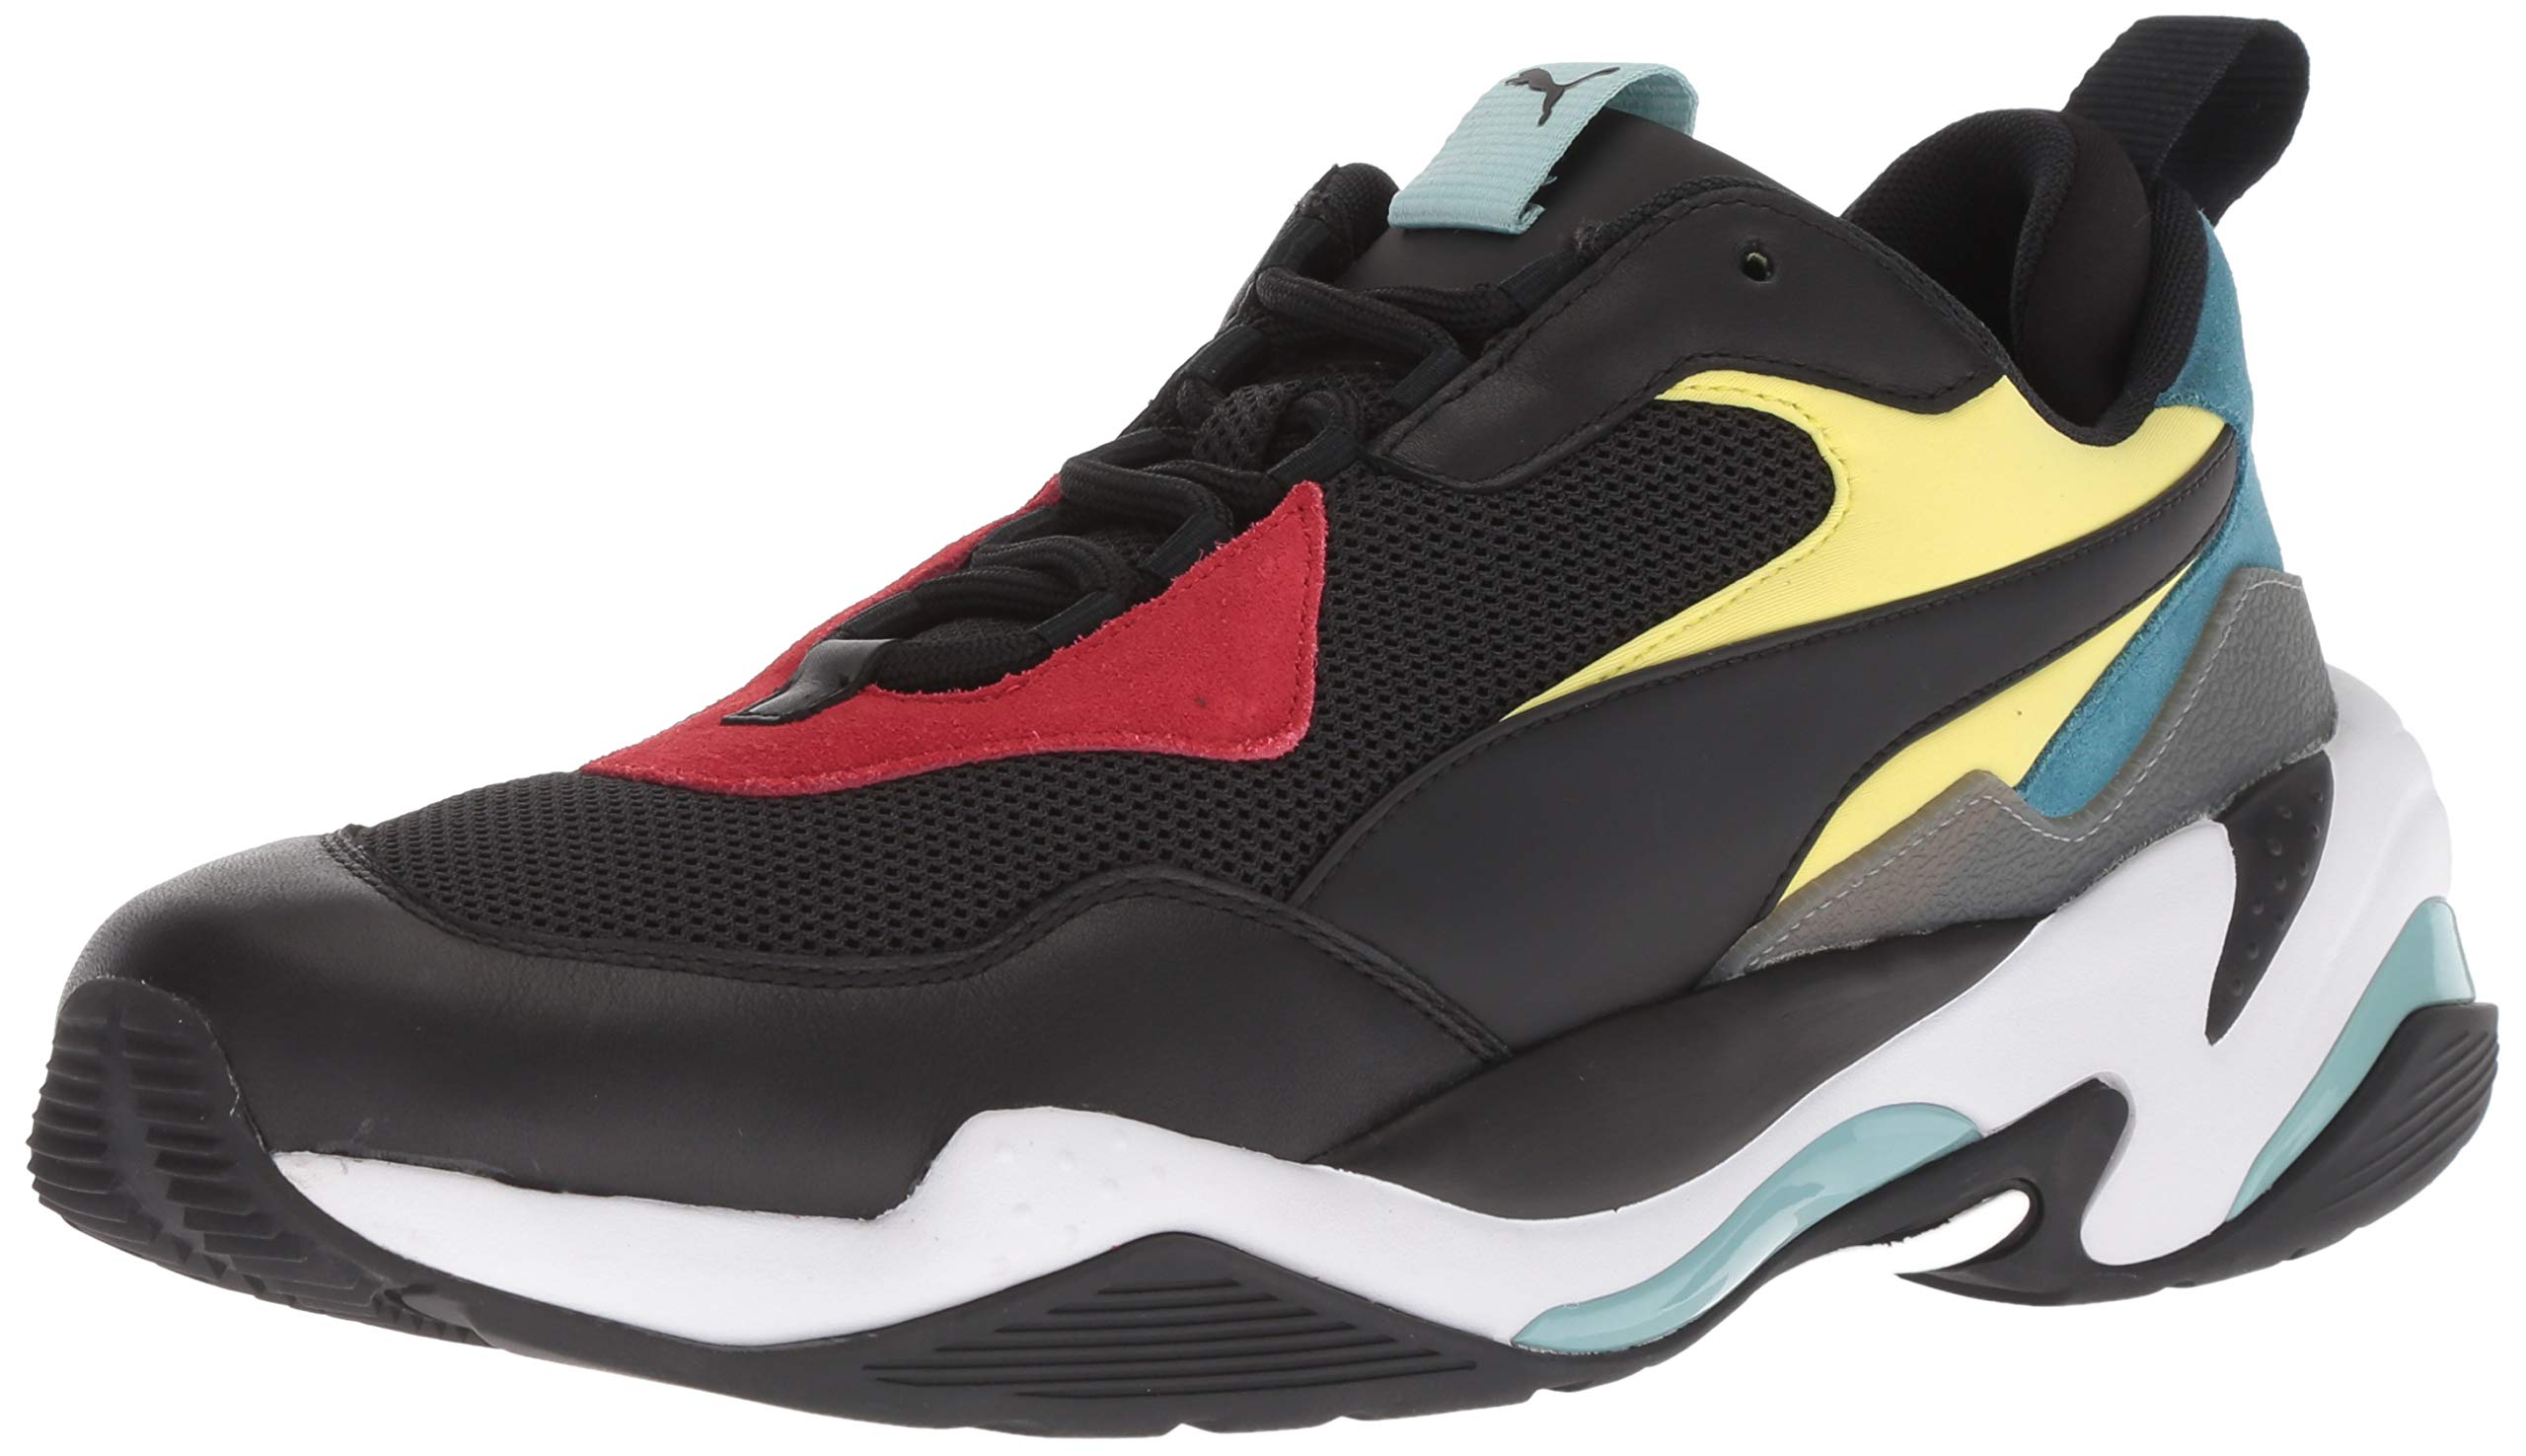 PUMA Men's Thunder Spectra Sneaker - Choose SZ/color